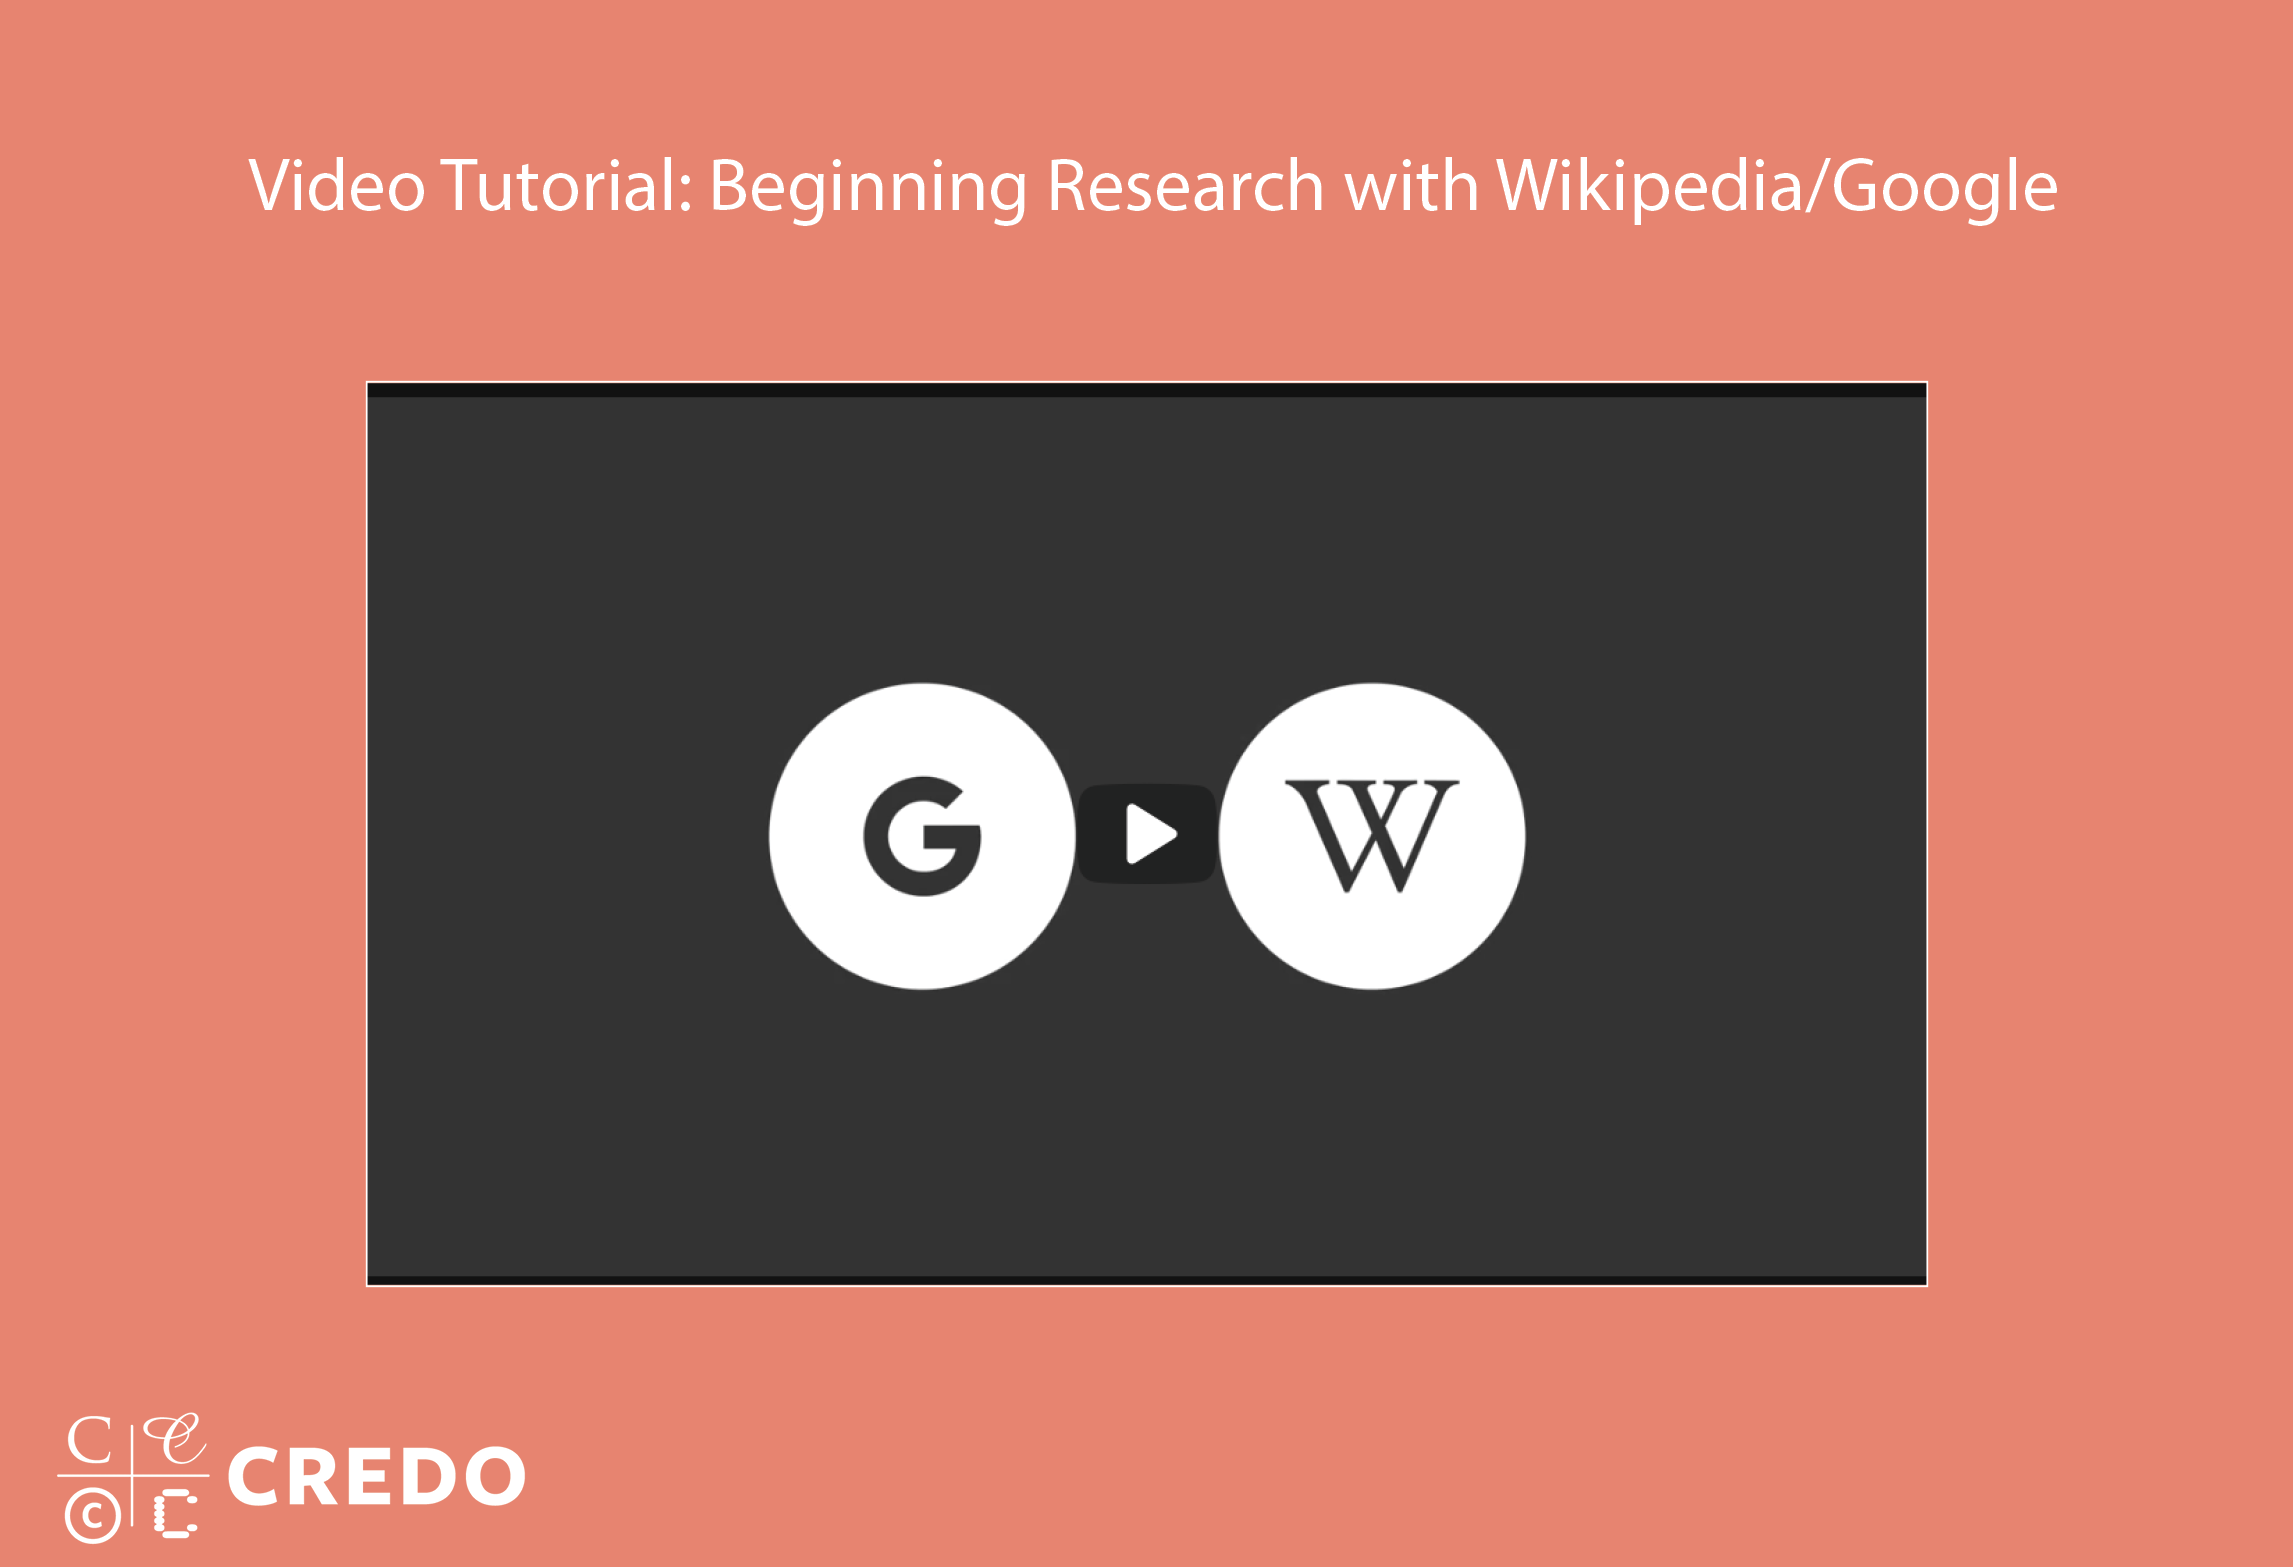 Video: Beginning Research with Google and Wikipedia